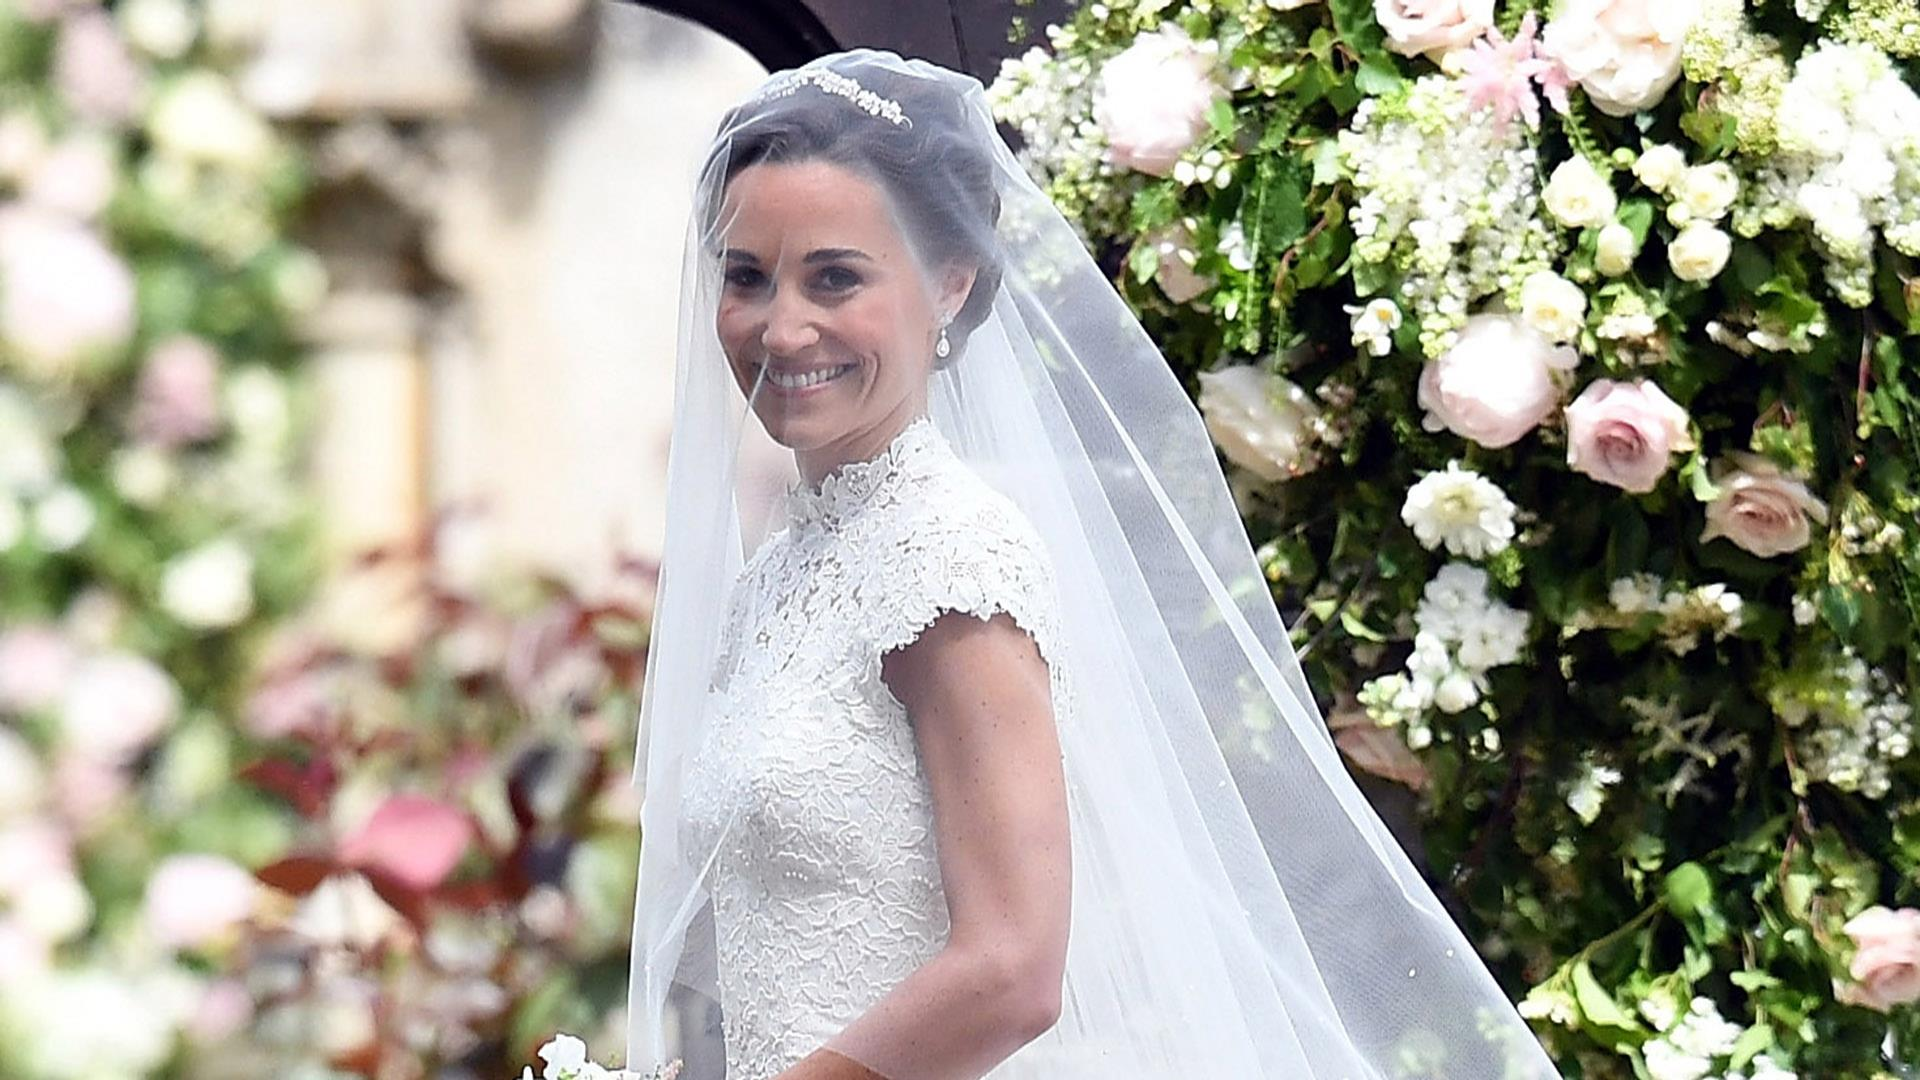 Pippa middleton s wedding an inside look at the dress and for Wedding dress like pippa middleton